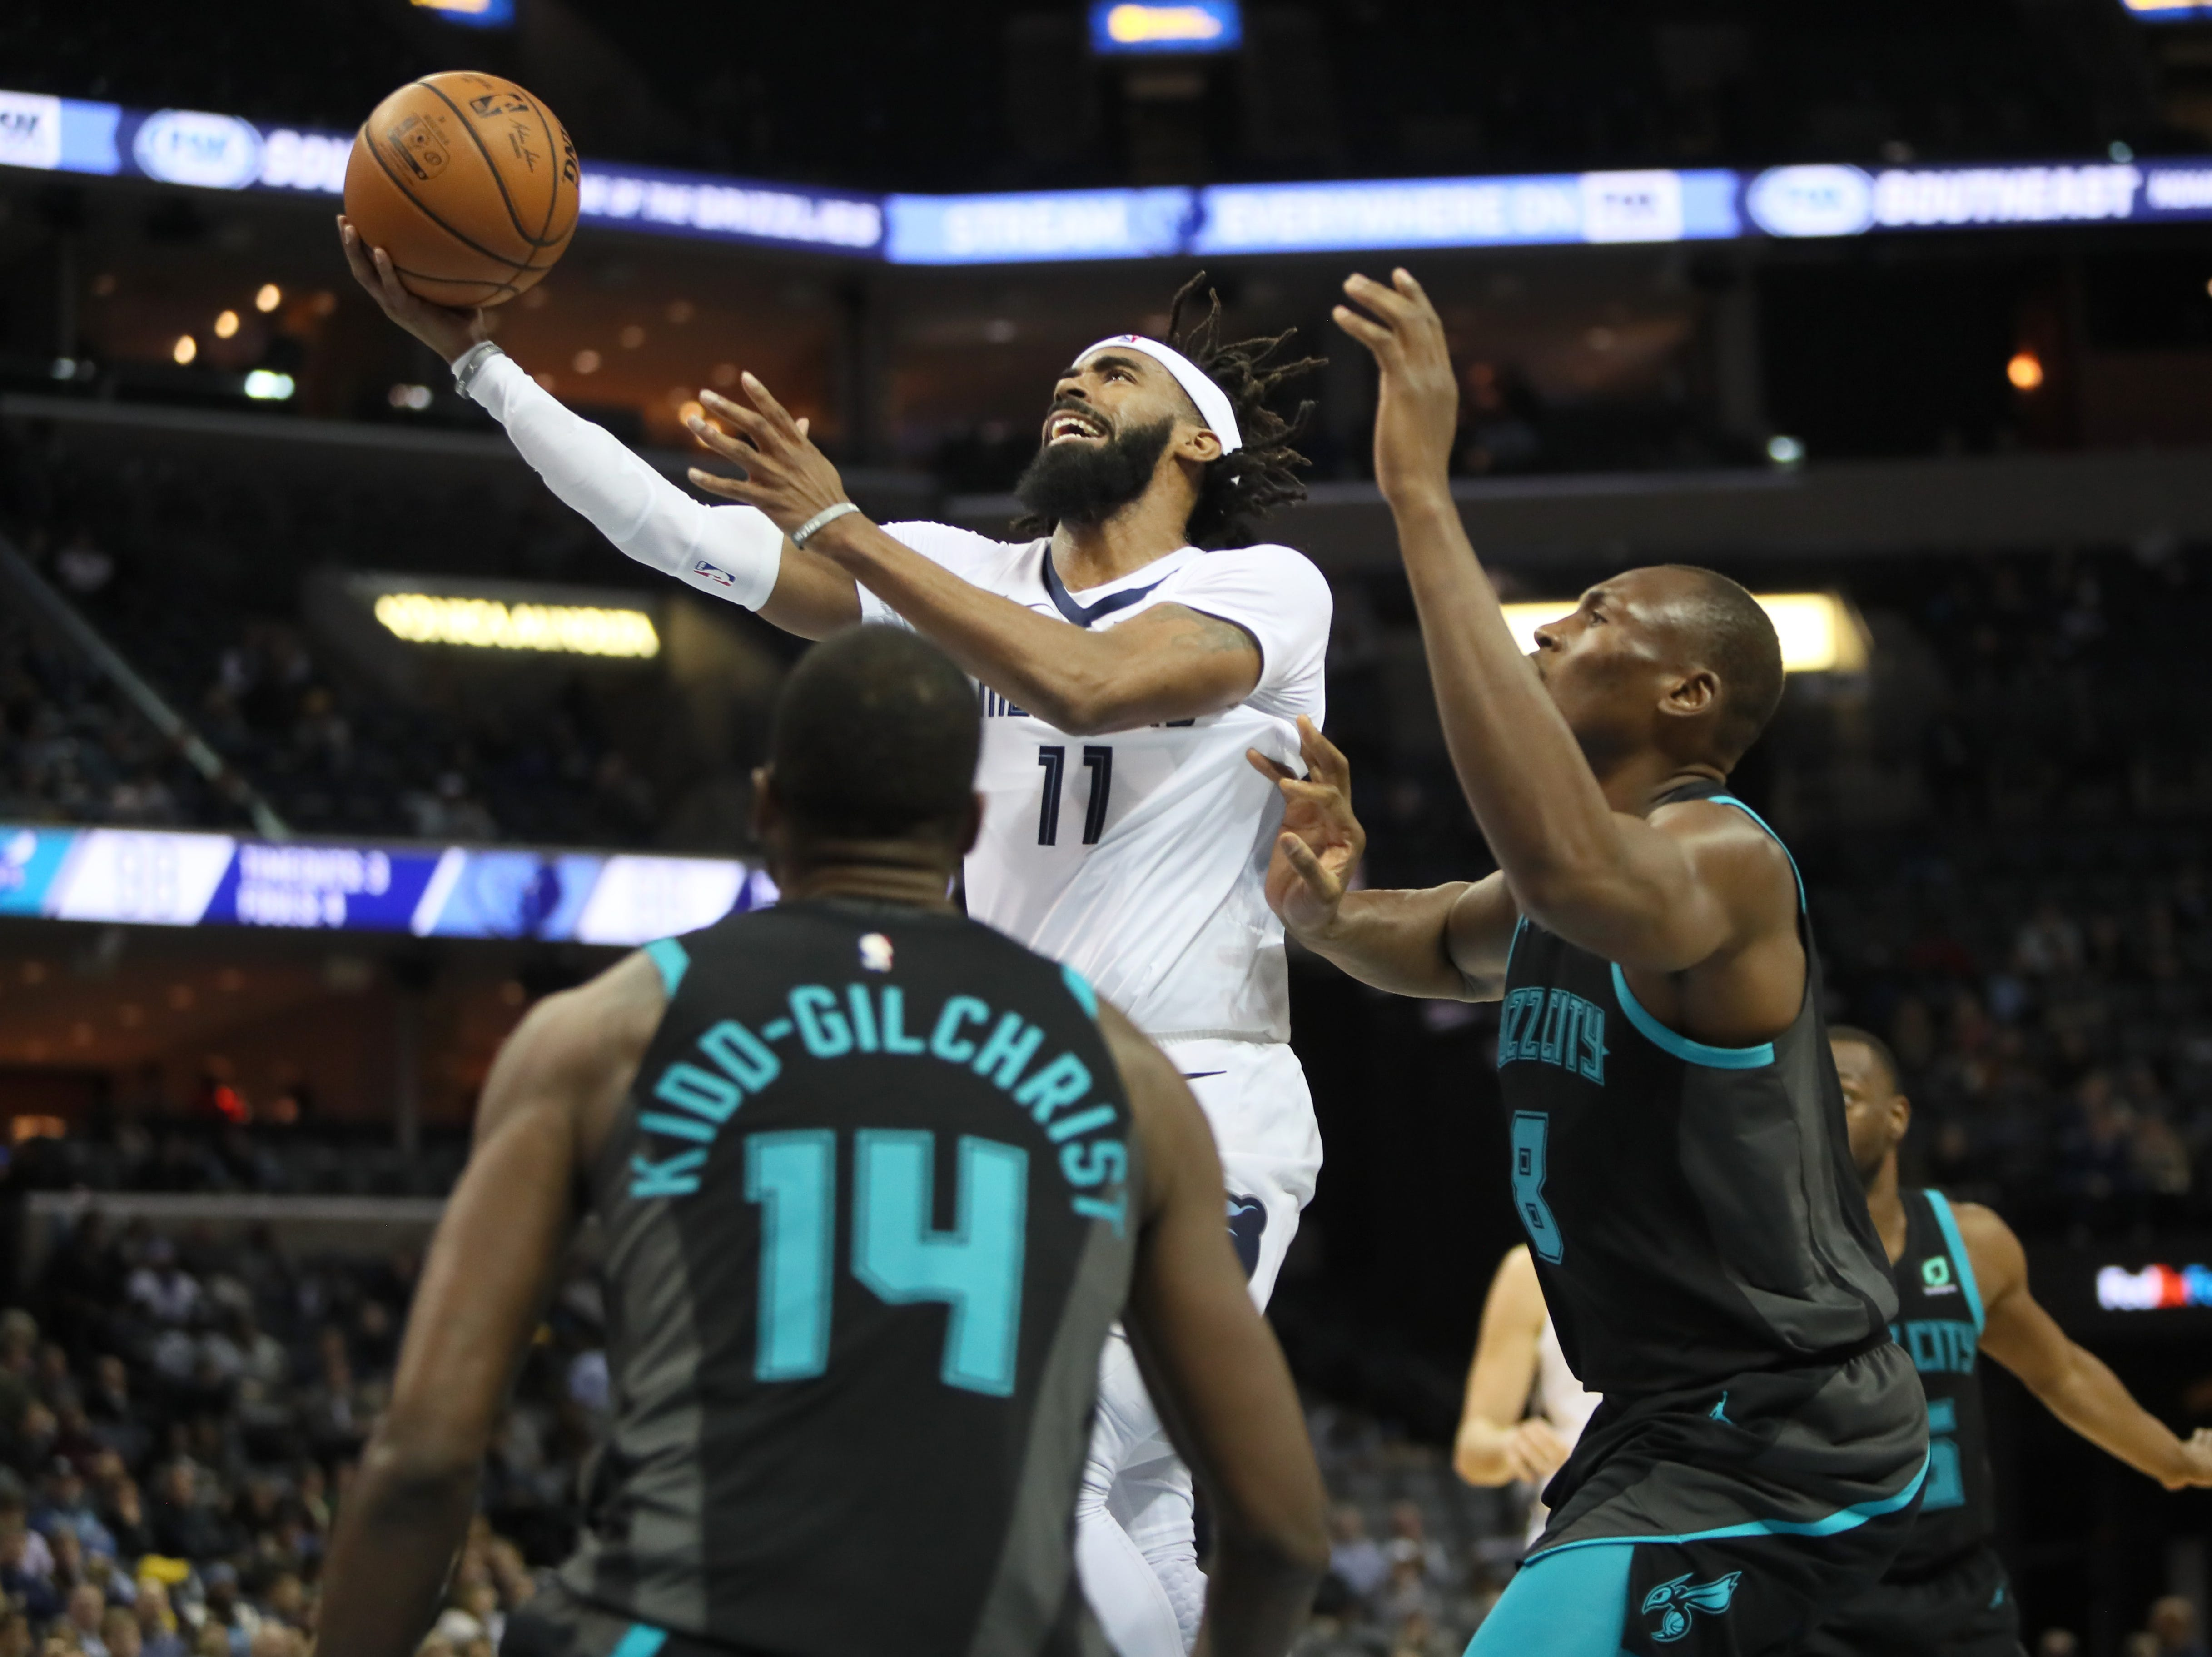 Memphis Grizzlies guard Mike Conley lays the ball up past Charlotte Hornets center Bismack Biyombo during their game at the FedExForum on Wednesday, Jan. 23, 2019.